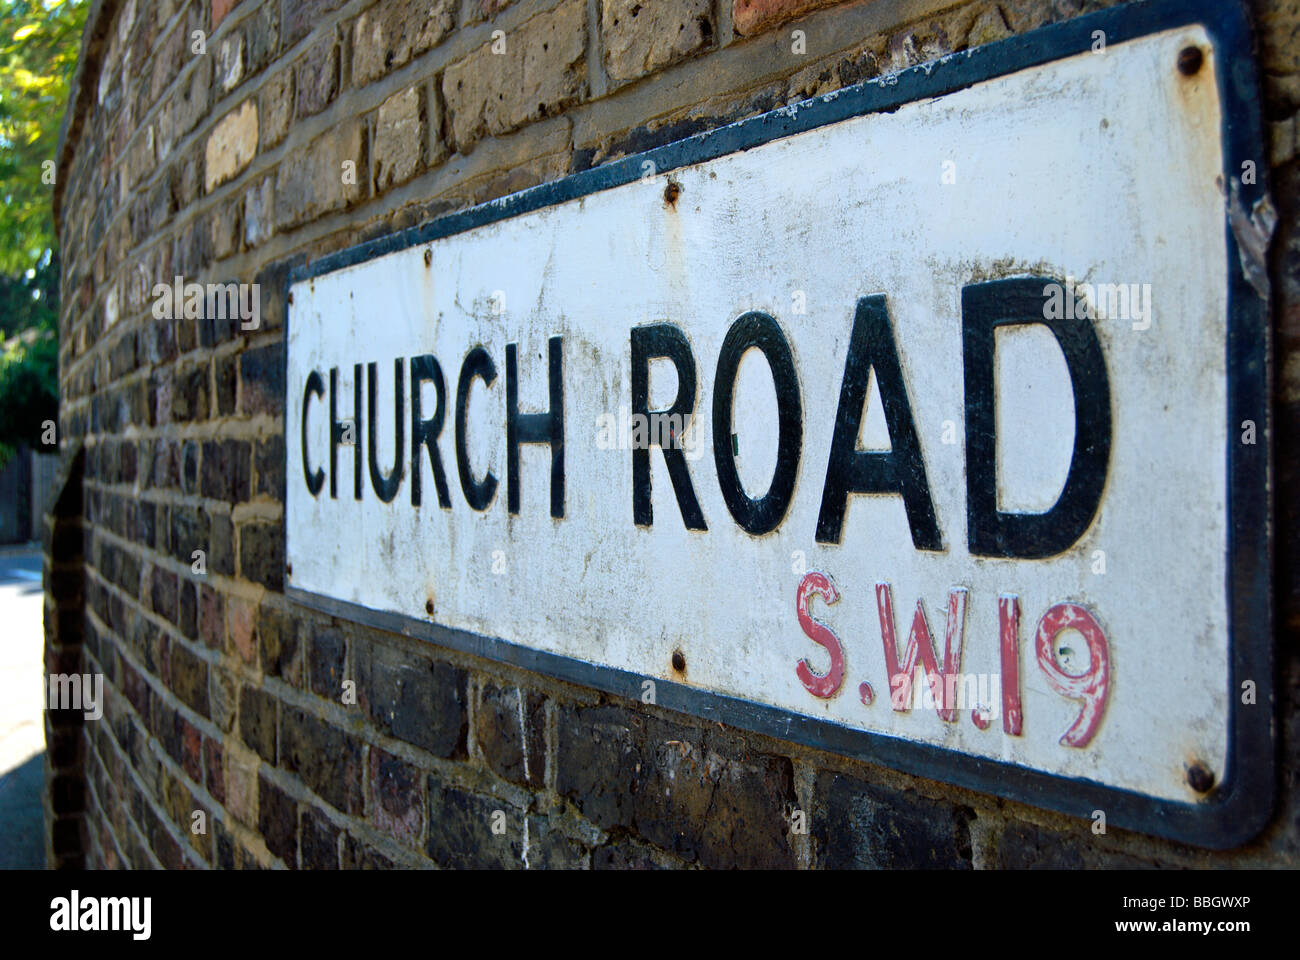 street name sign for church road, wimbledon, with sw19